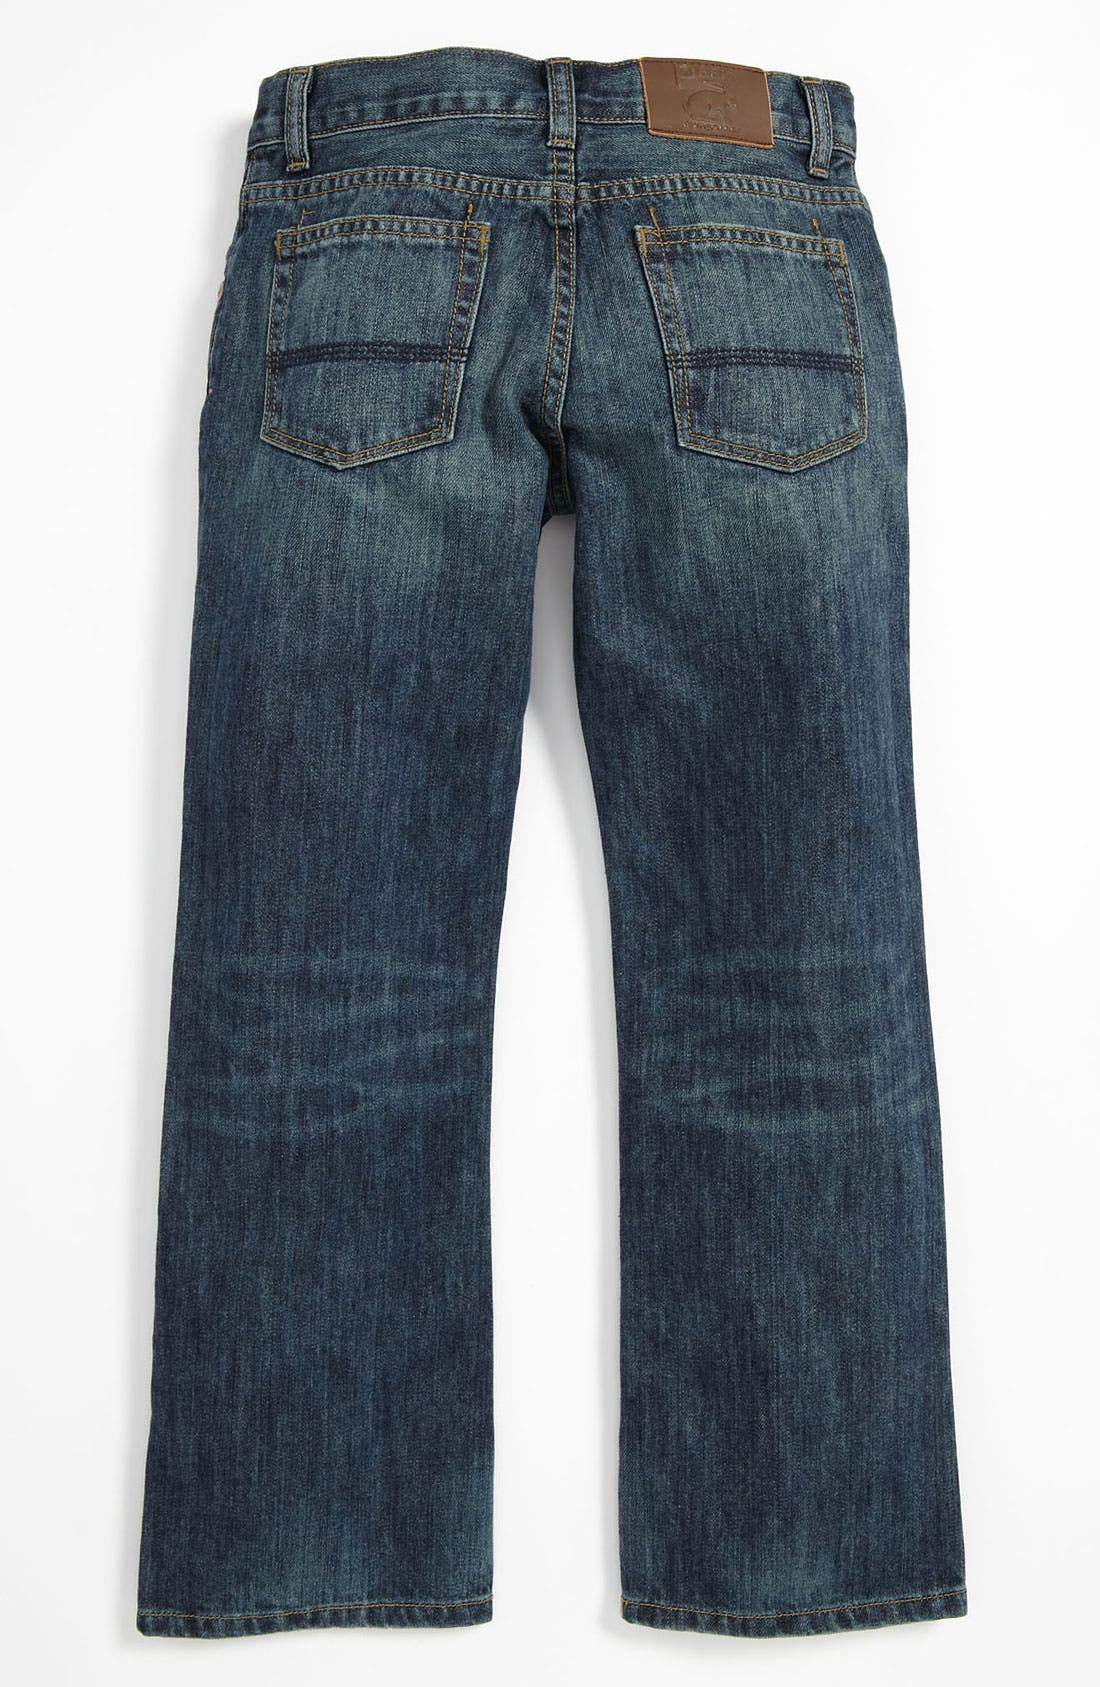 Alternate Image 1 Selected - Peek 'Sullivan' Jeans (Toddler, Little Boys & Big Boys)